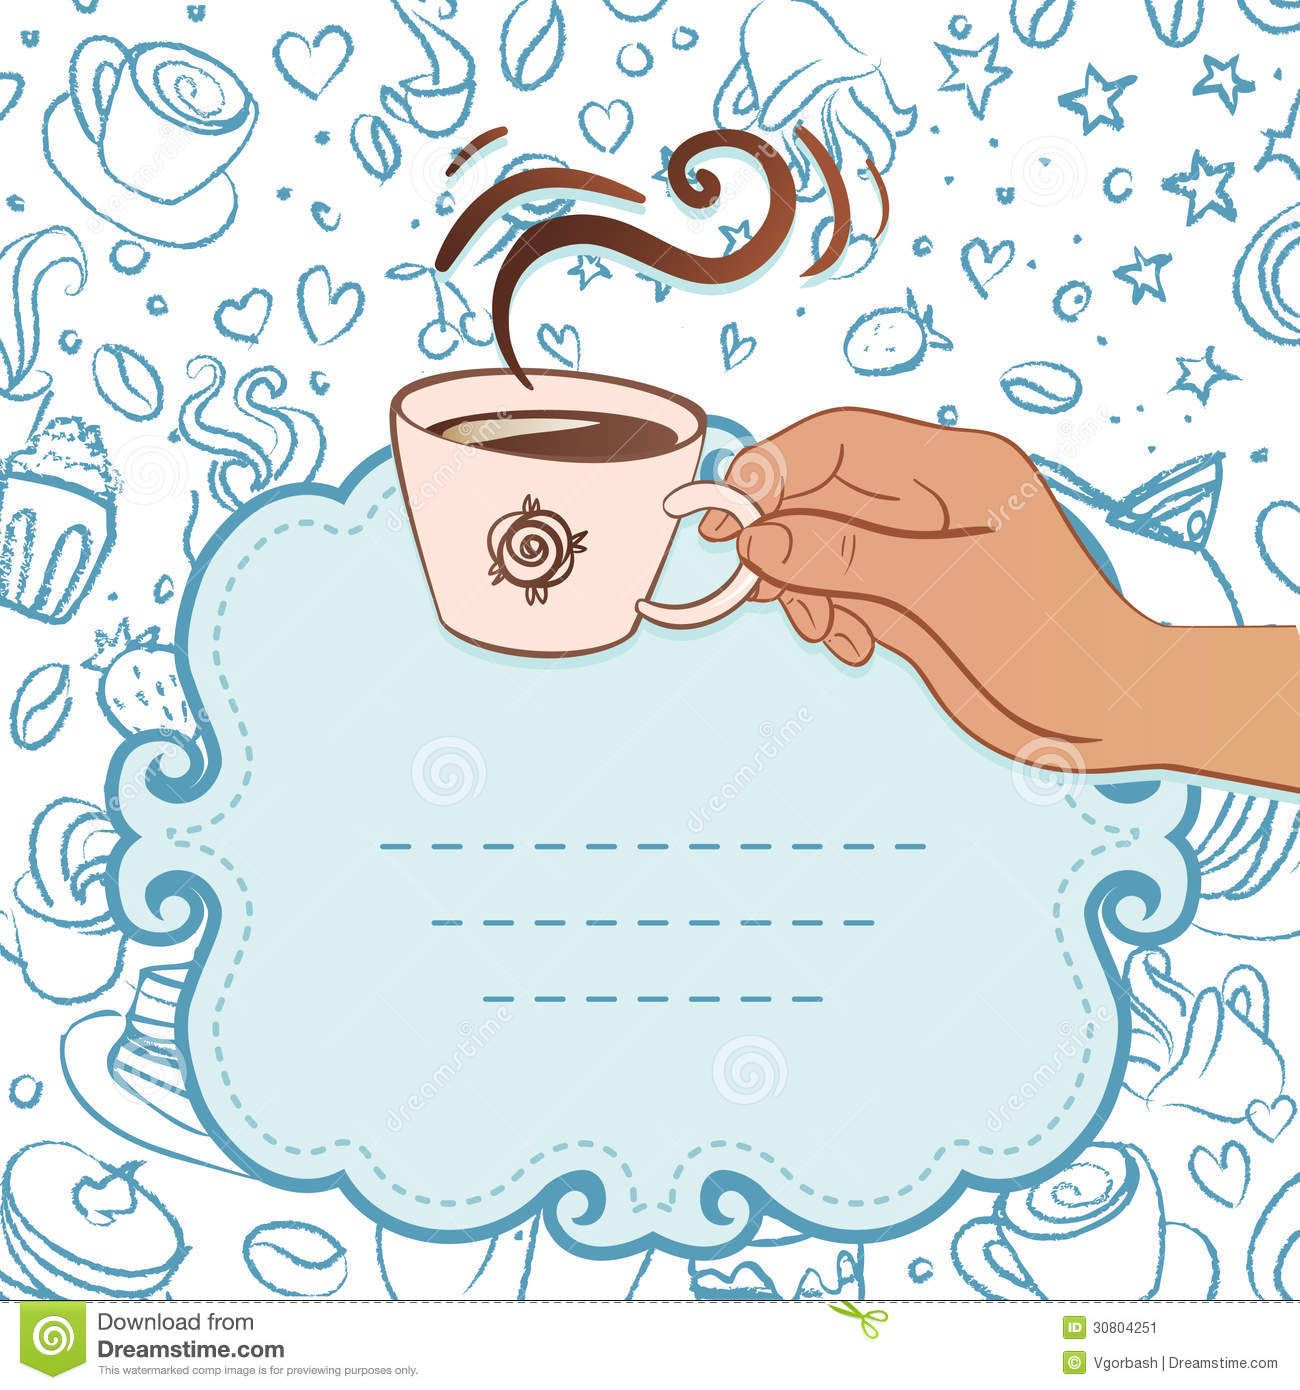 Elegant tea party invitation template with teacups cartoon vector - Free Coffee Invitation Template Tea Party Invitation Vintage Style Frame With Hand Holding Cup Of